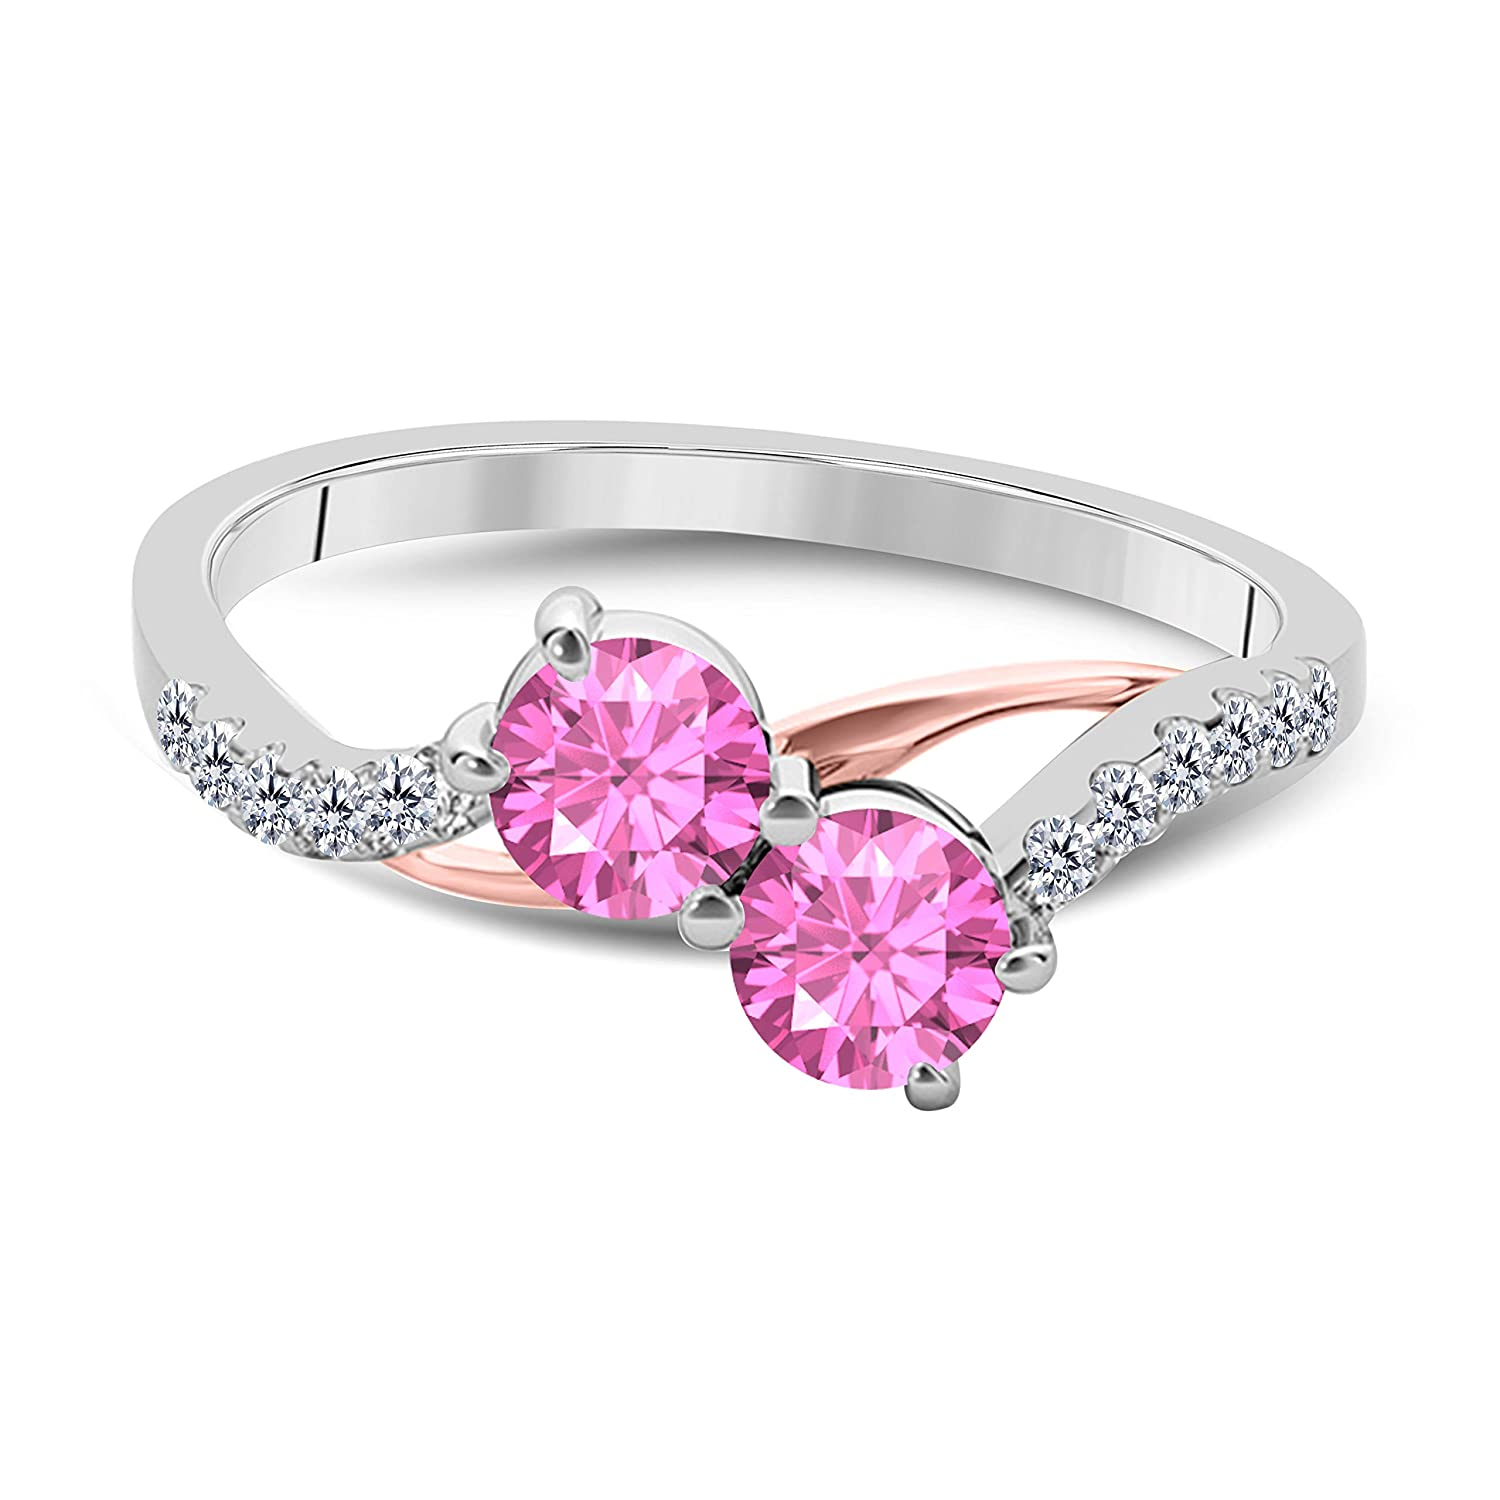 14k Two Tone Gold Over 925 Sterling Silver Two Stone Pink Sapphire and White Cubic Zirconia Engagement Couple Ring 1.00 Ct